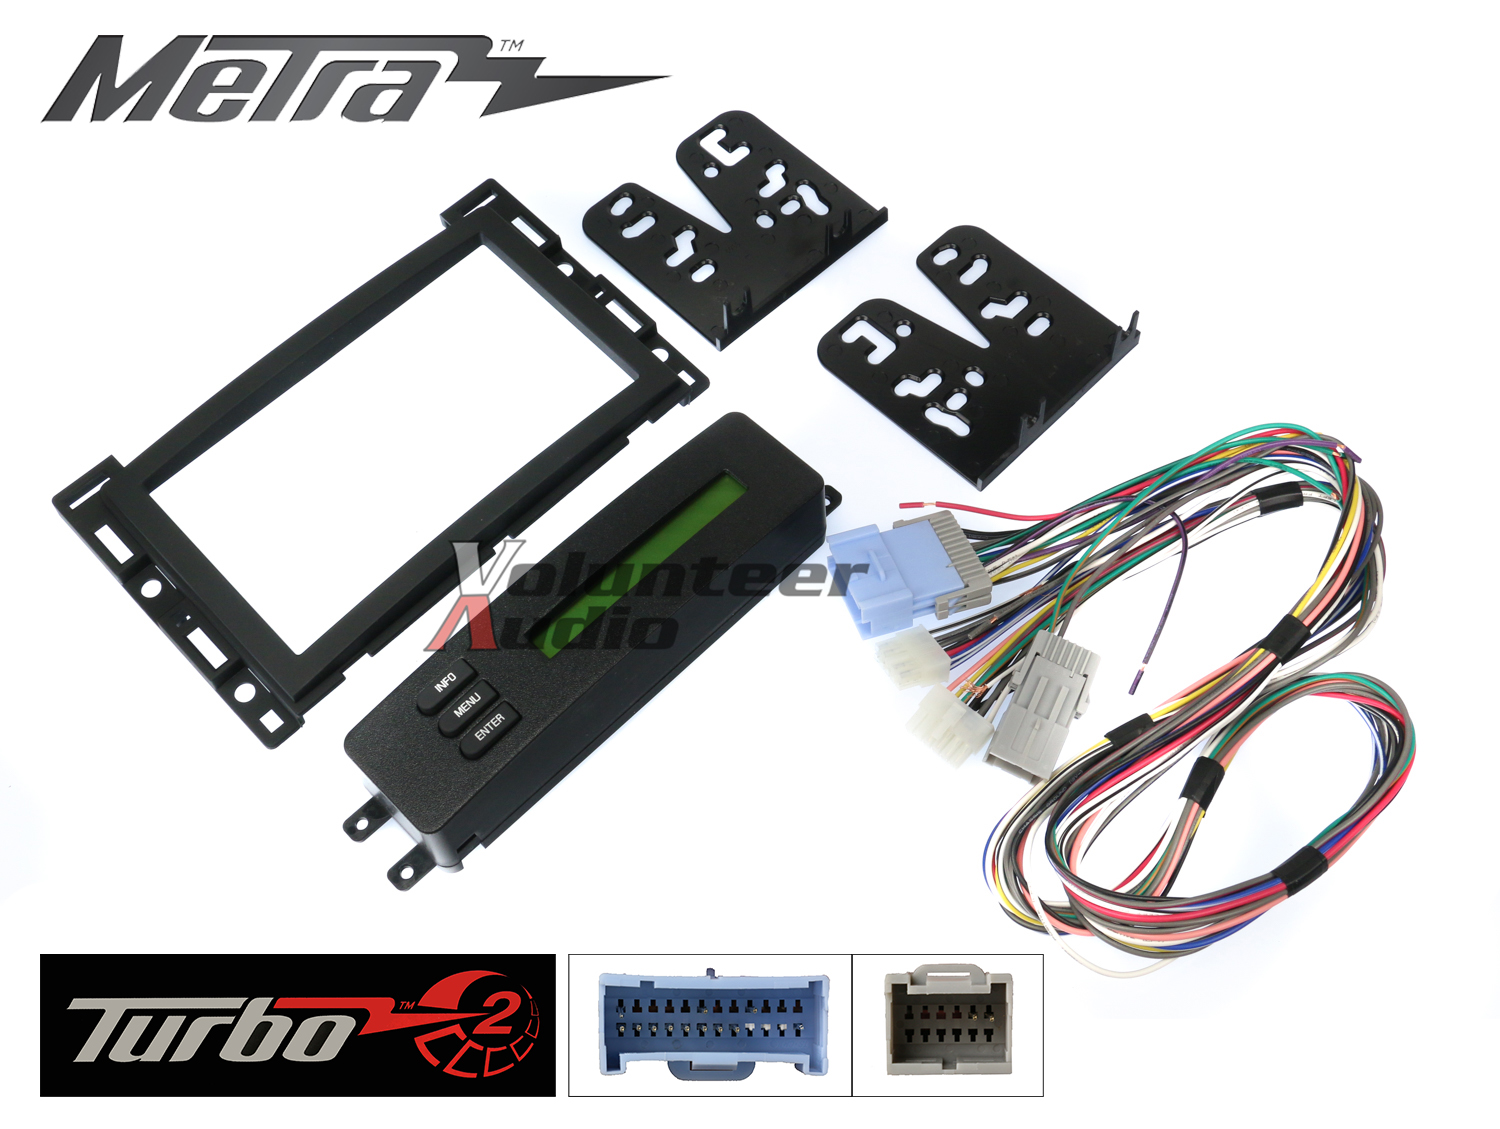 99 3303b marked1 metra 95 3303b double din stereo dash kit for chevy malibu metra 99-3303 wiring harness at edmiracle.co